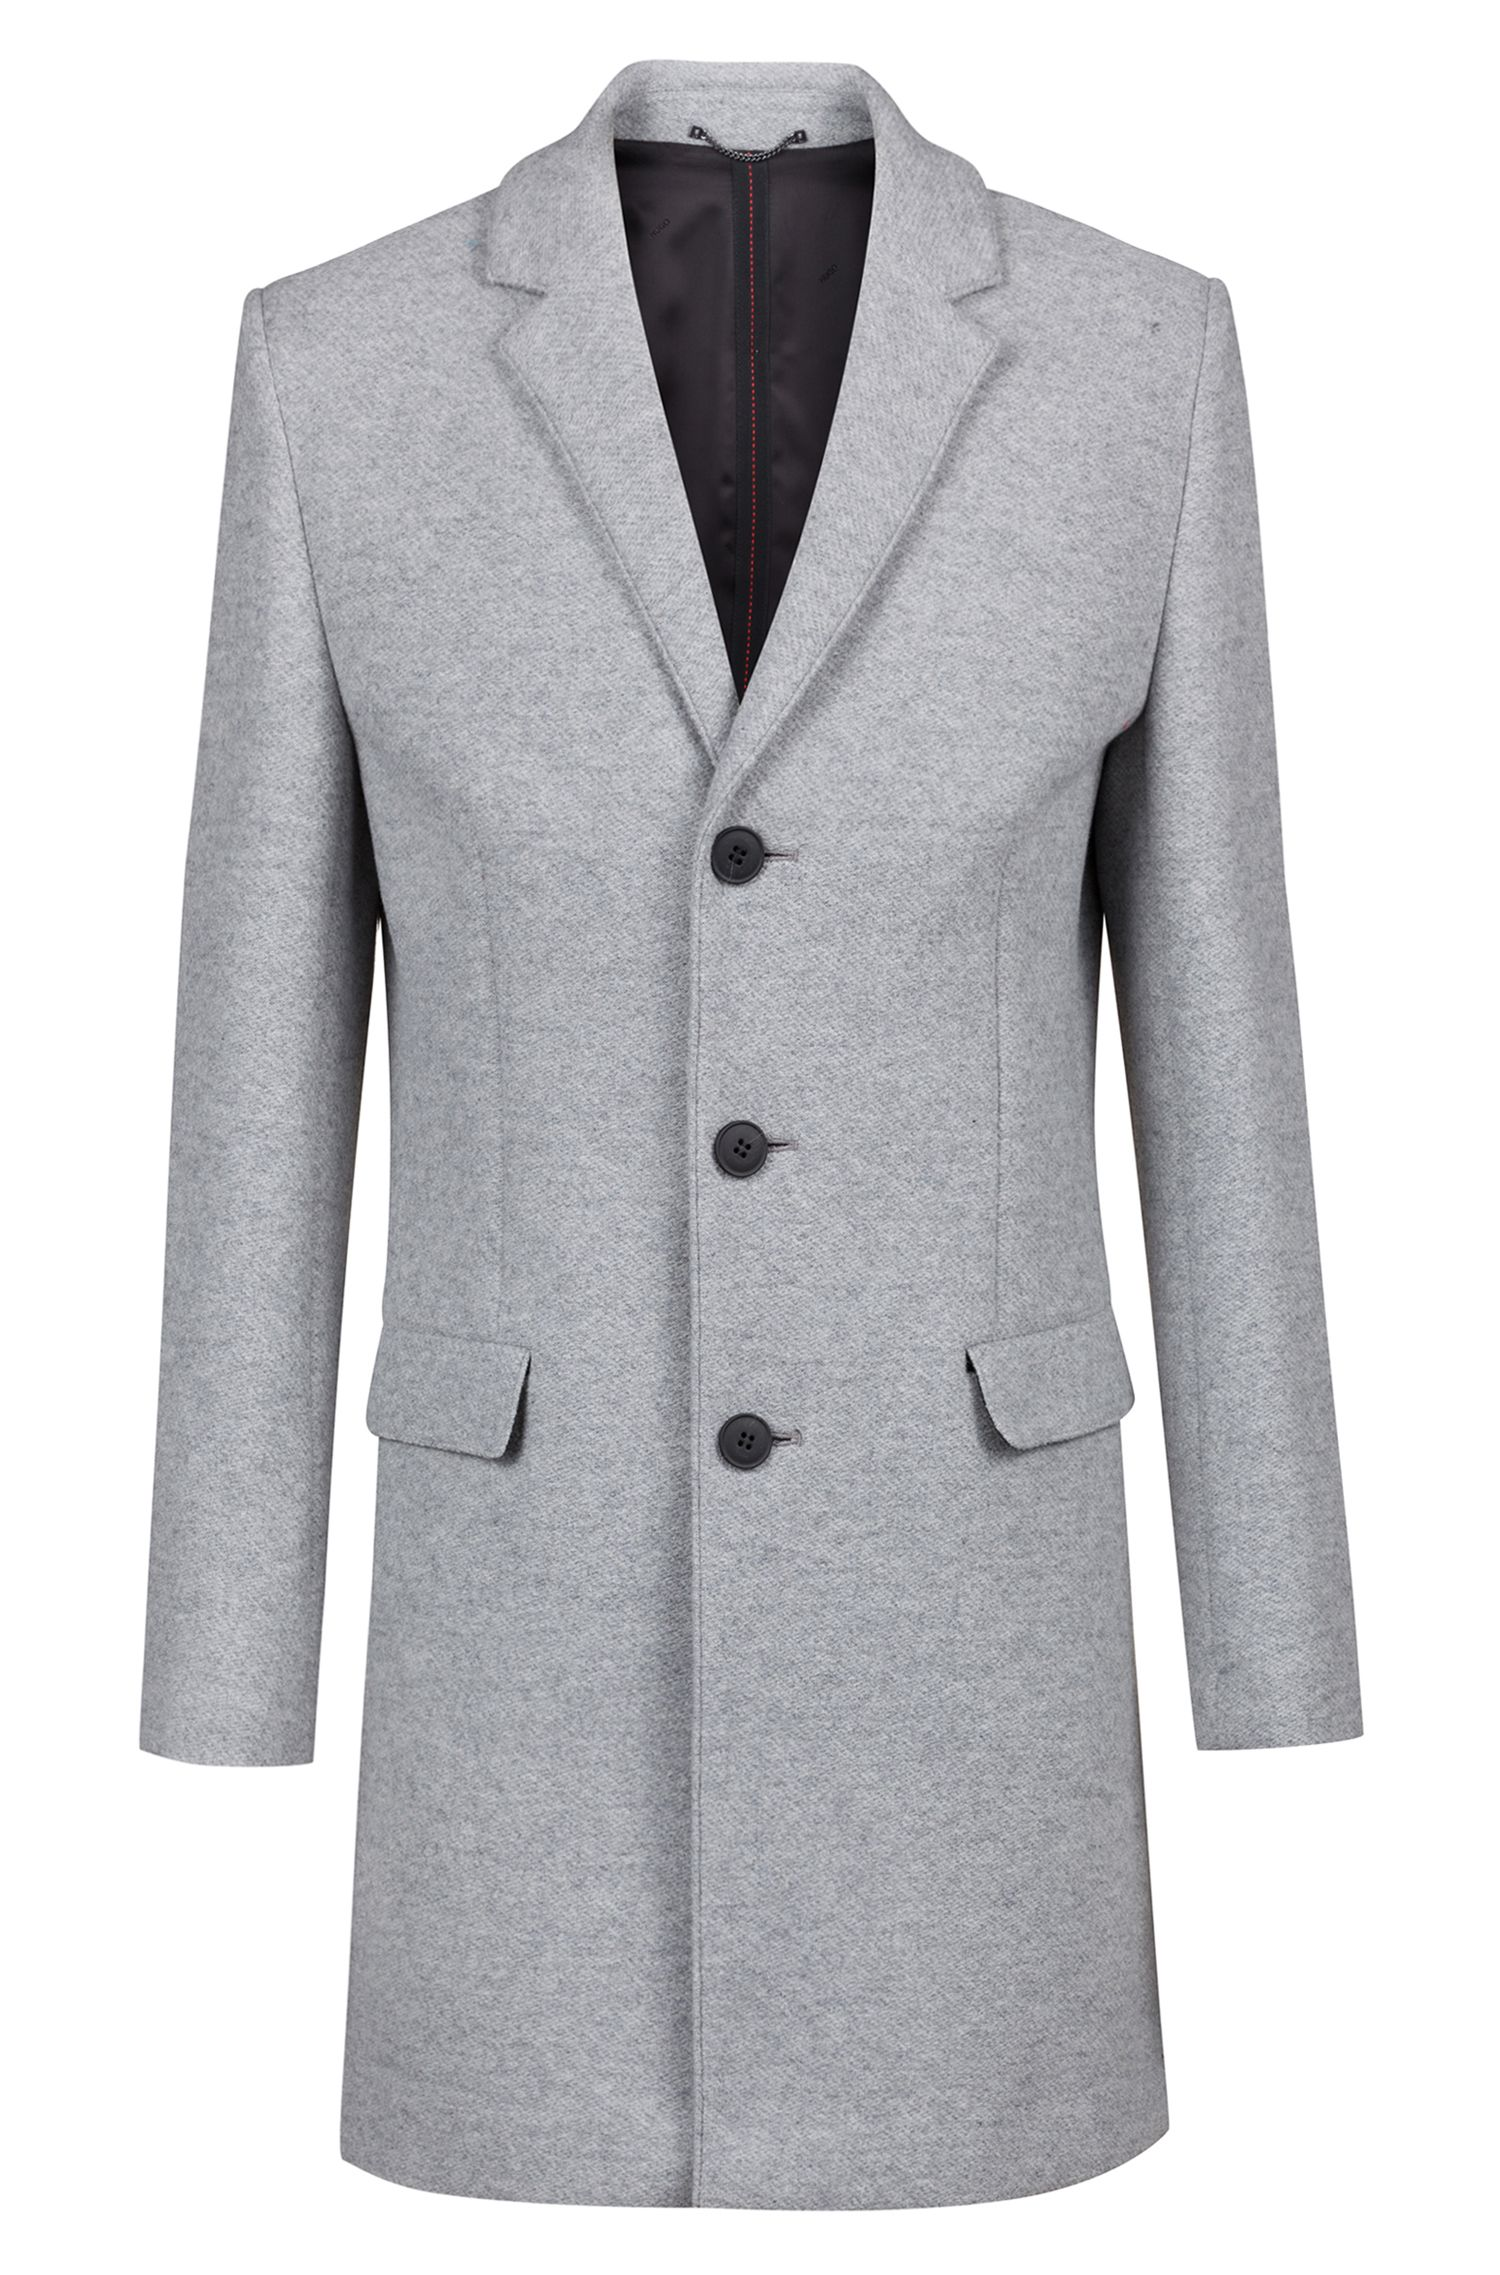 Manteau Slim Fit en tissu chiné, Gris